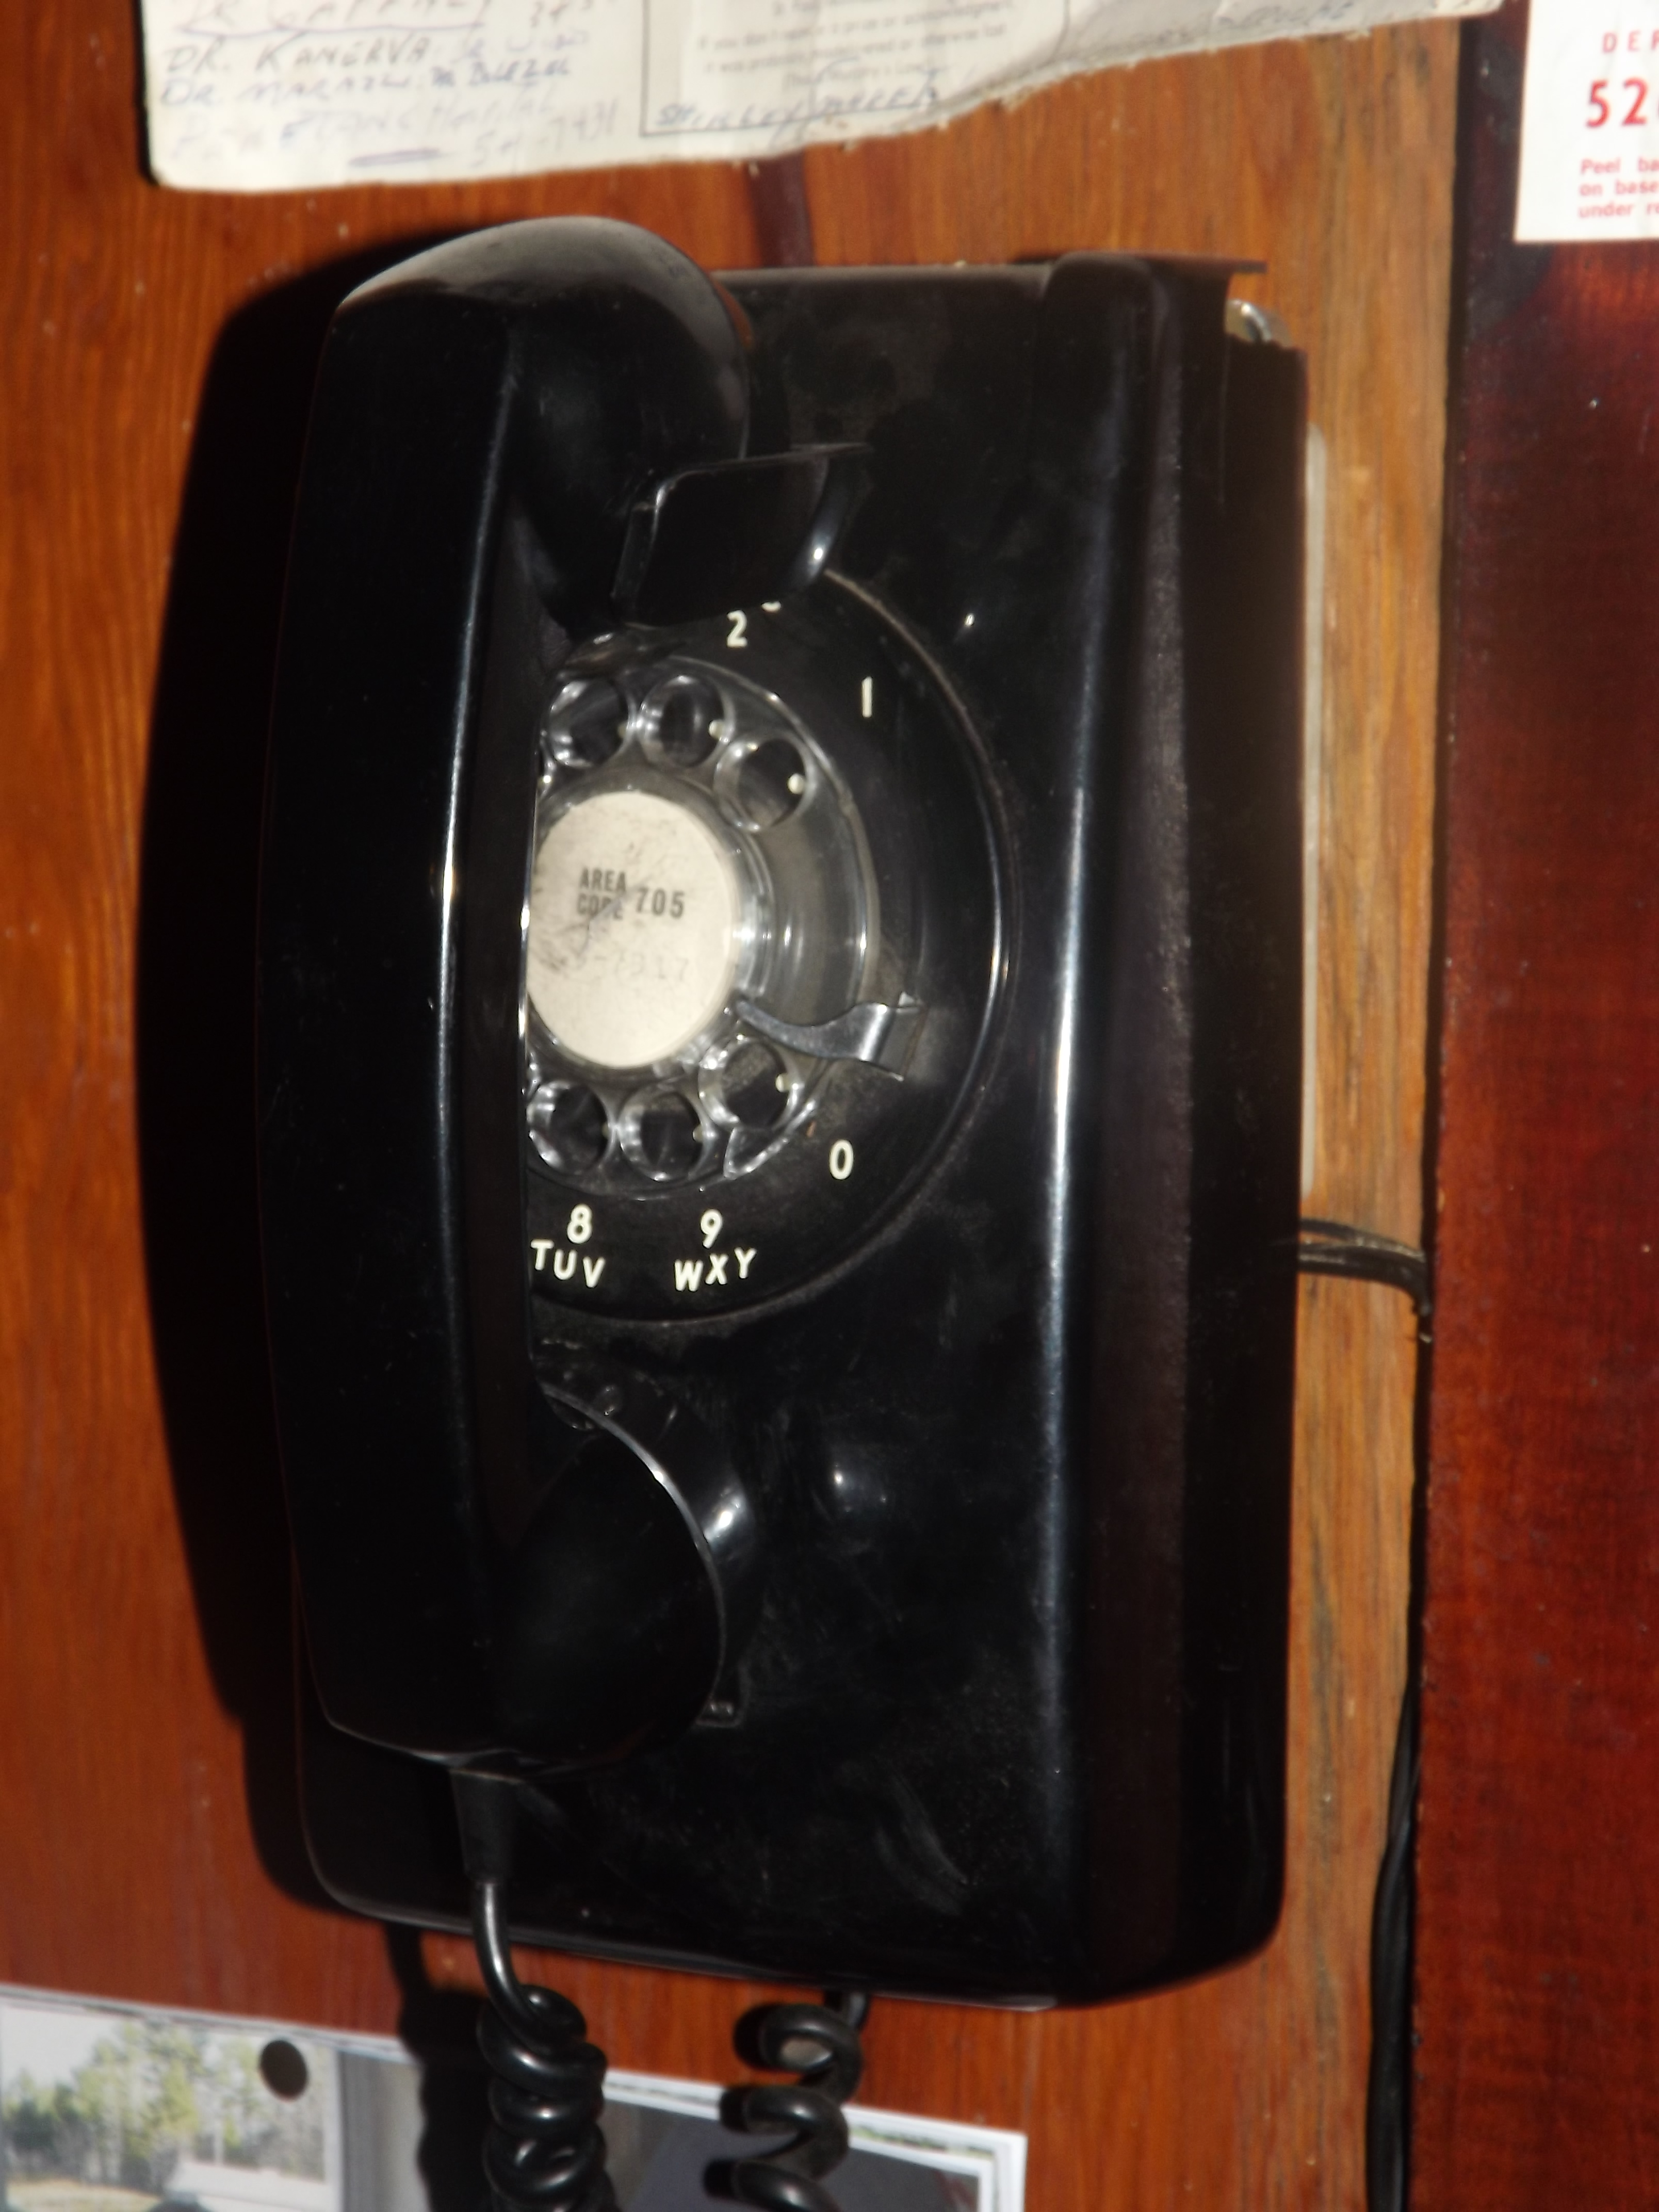 The old black rotary phone | Science and Story